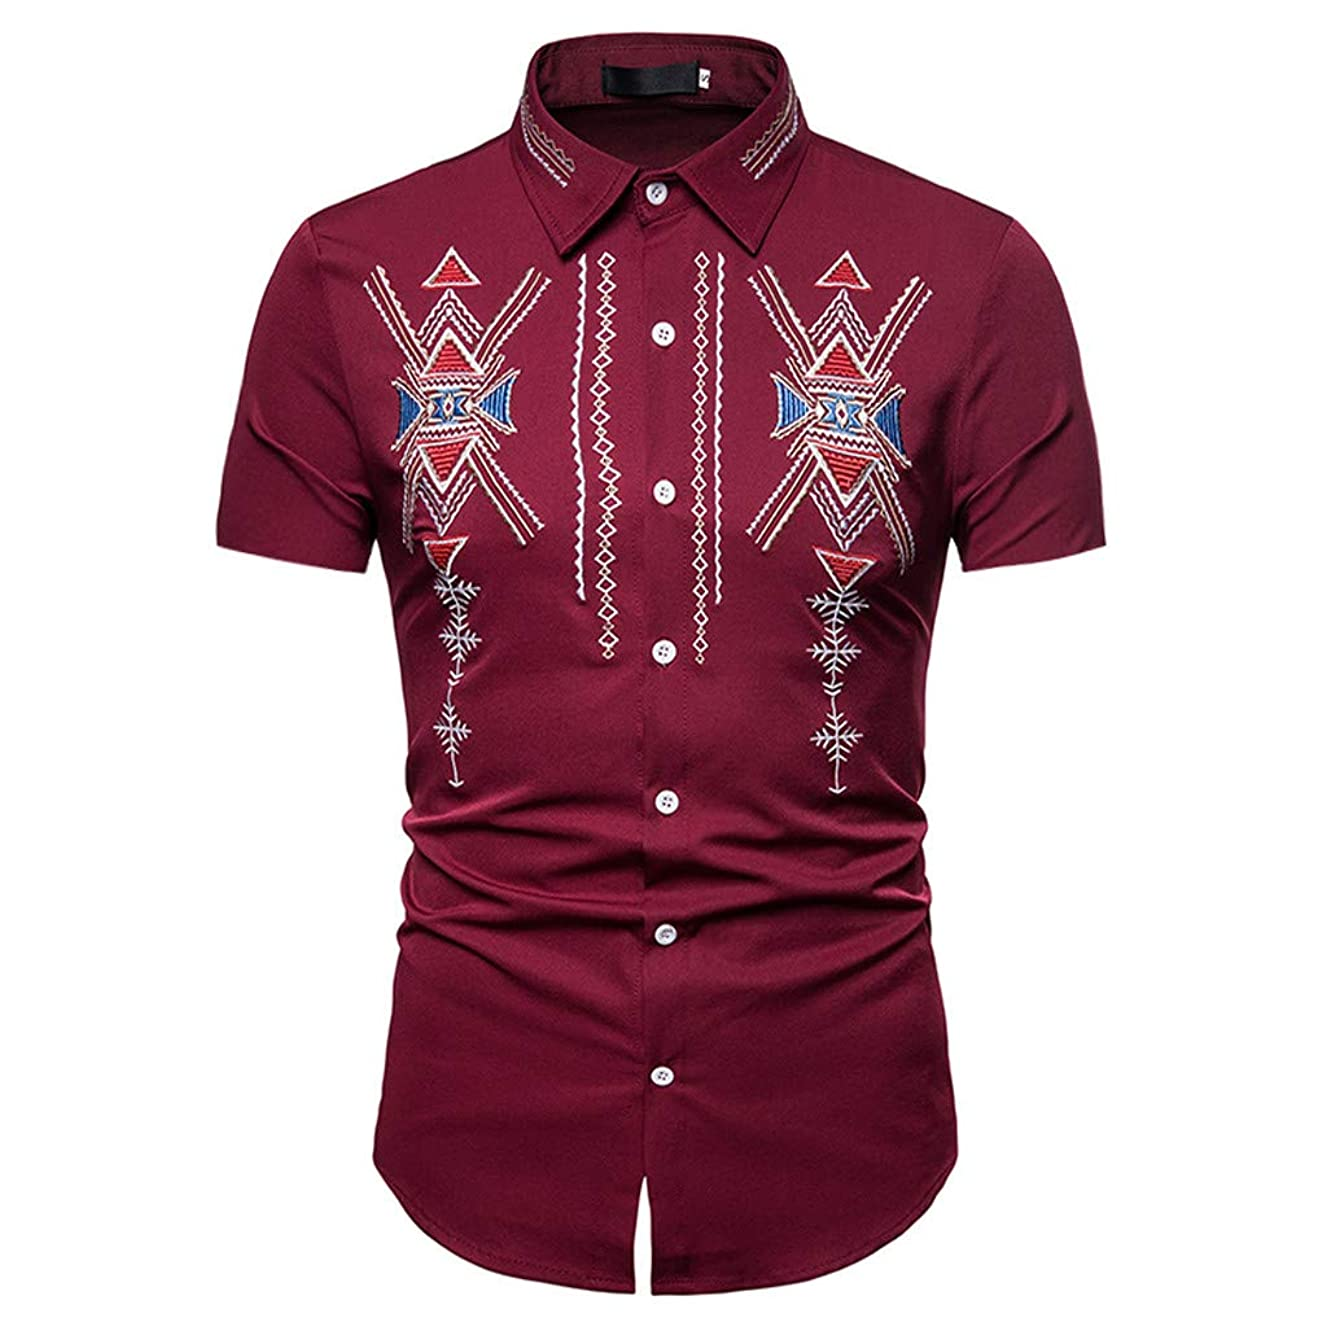 Rakkiss_Men Shirts Fashion Solid Embroidery Exquisite Tops Lapel Slim Fit Blouse Summer Short Sleeve Tee